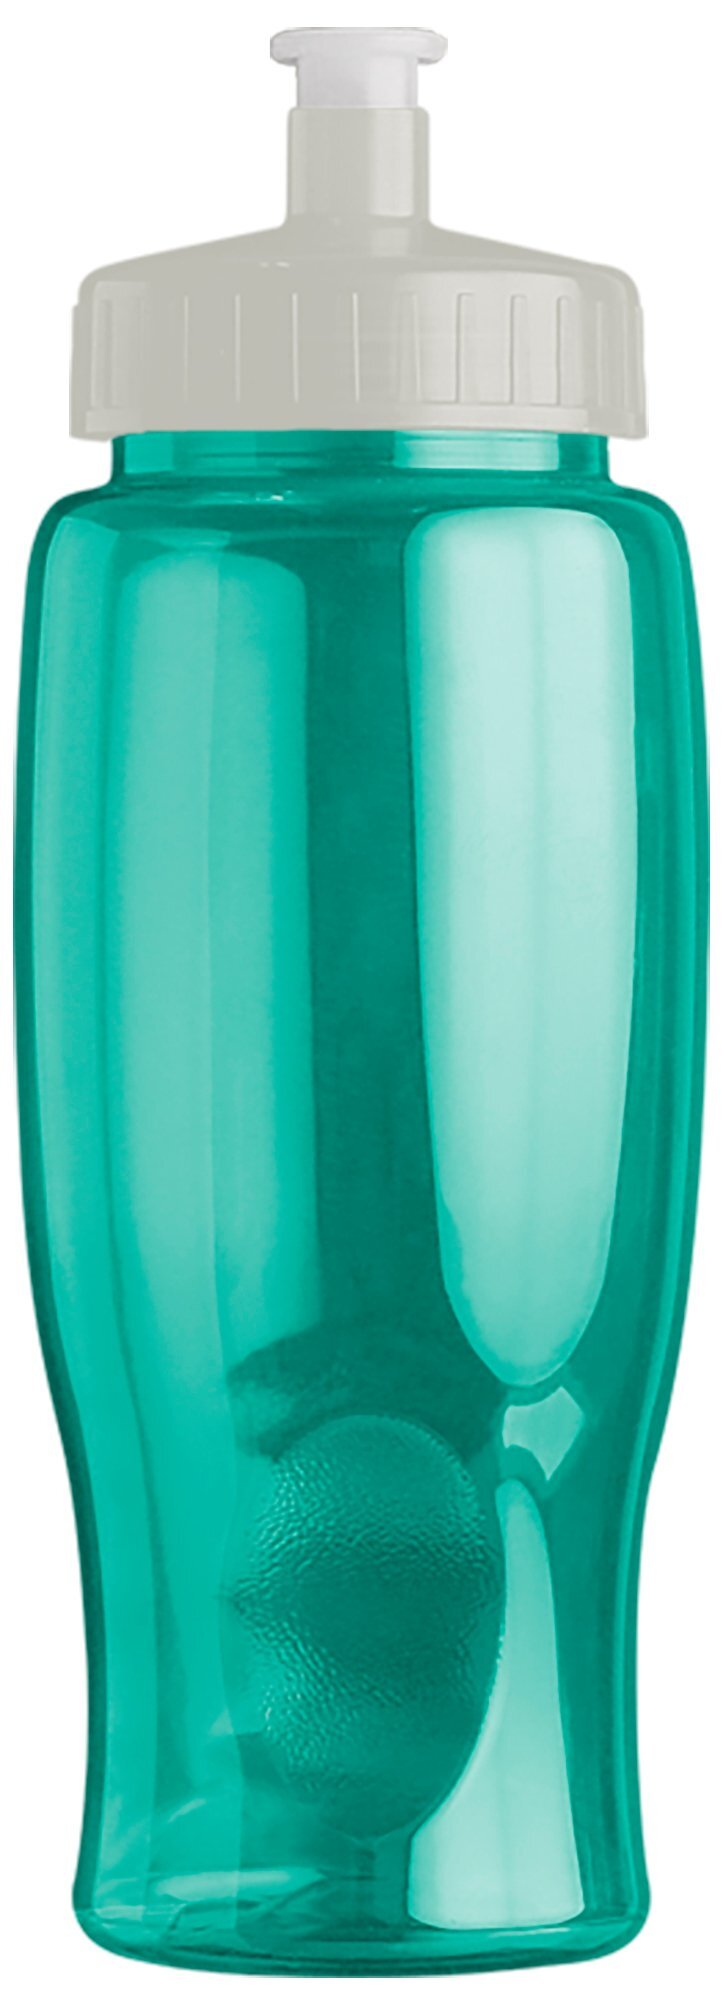 Transparent Grip Poly-Pure Sport Bottle, 27oz. - Push Pull Lid